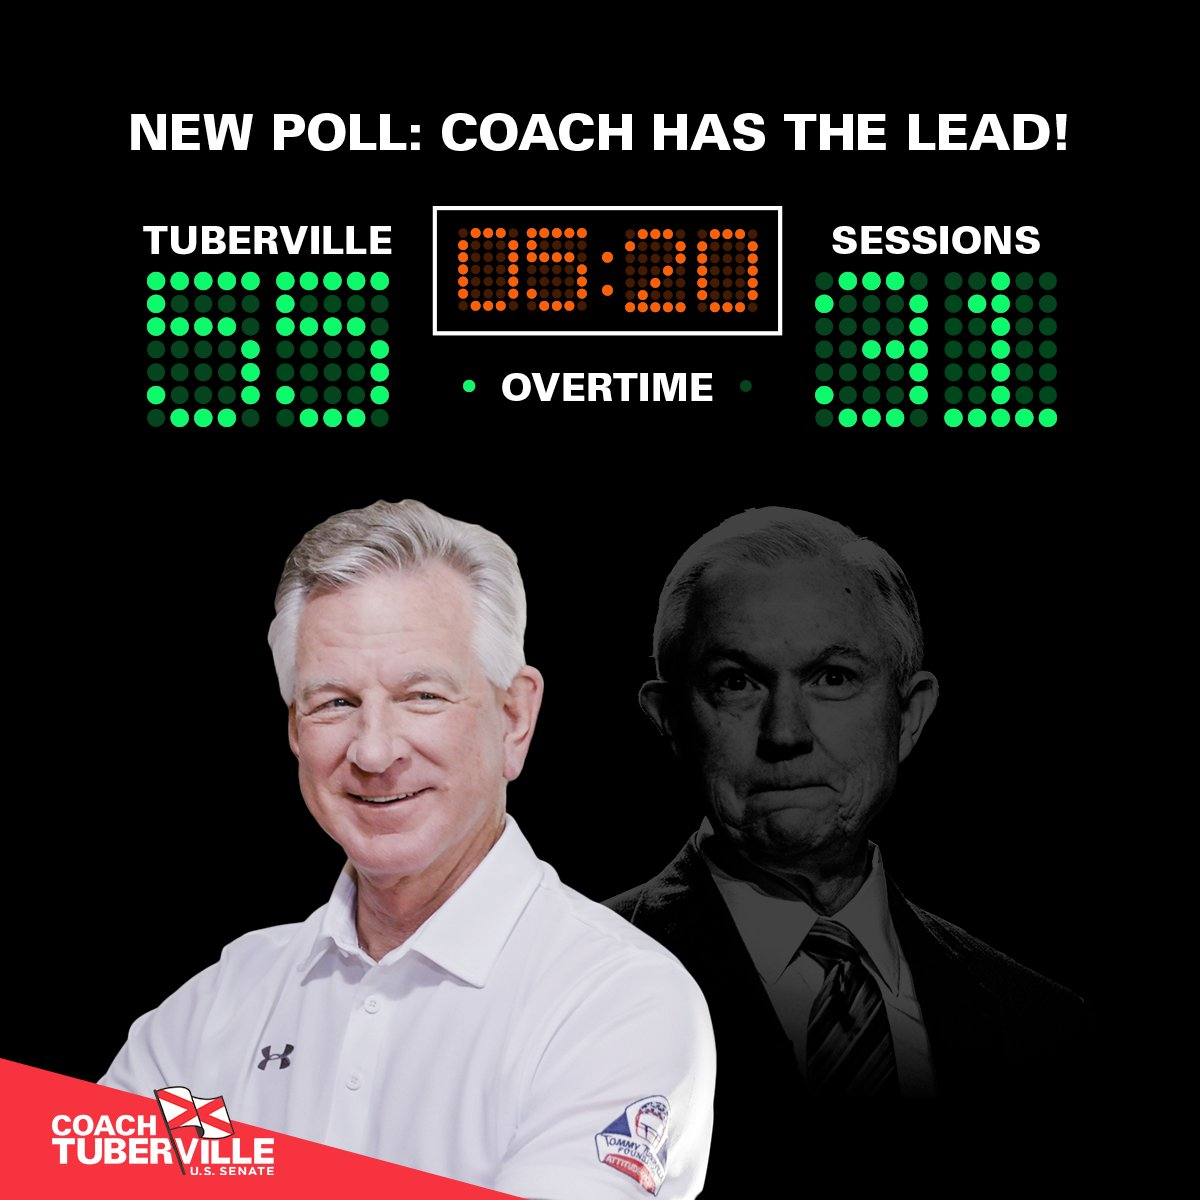 Have you seen the latest poll? Coach is leading D.C. Swamp Rat @JeffSessions 55-31. Help us keep our foot on the gas and finish him in overtime, contribute now!